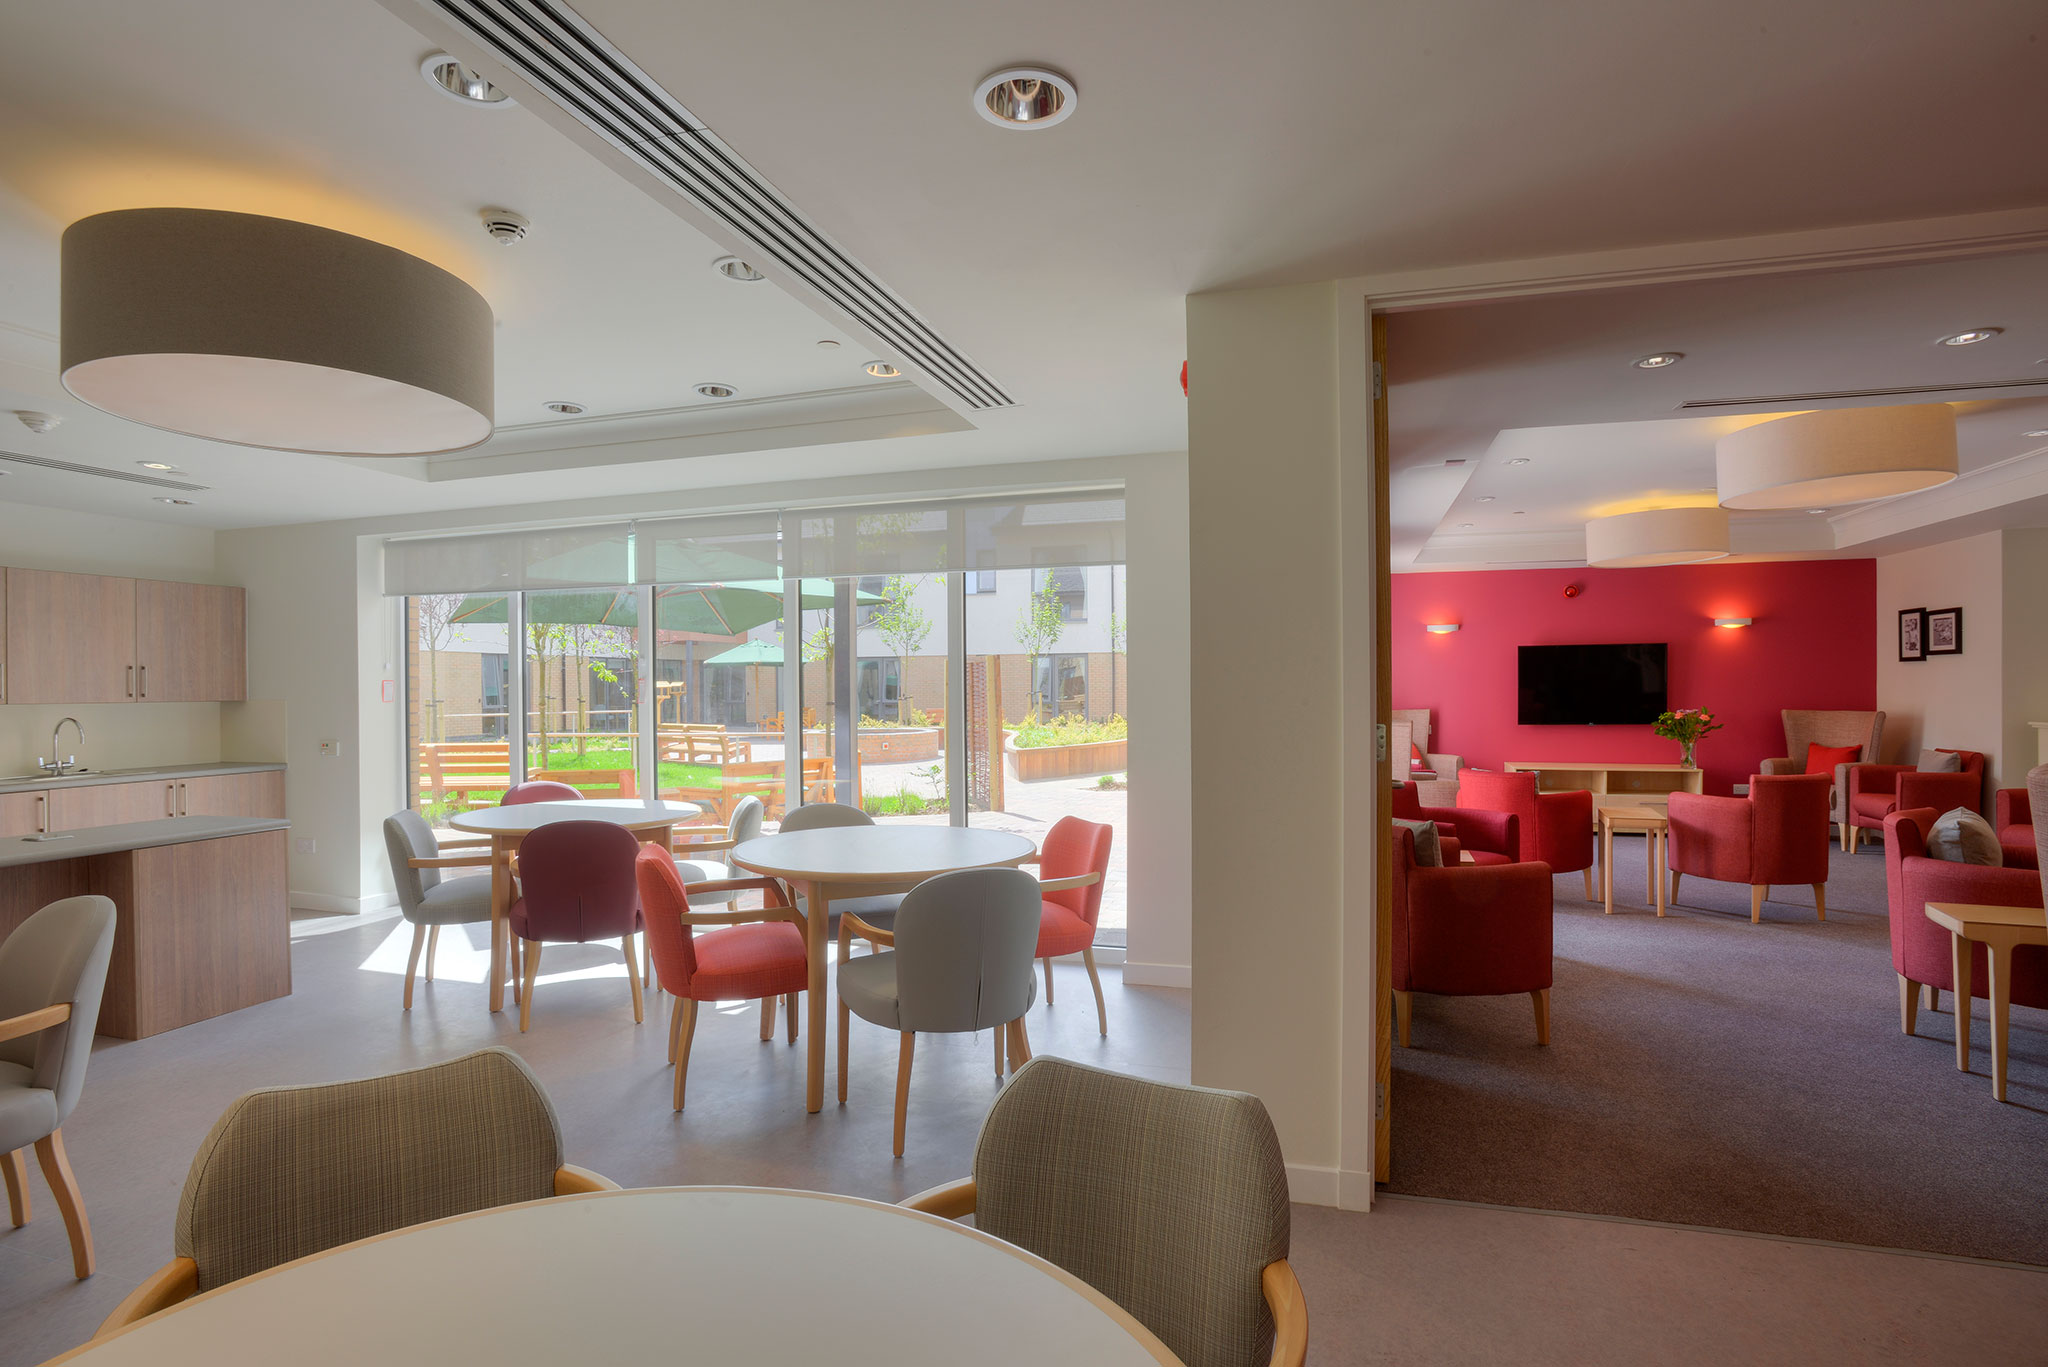 Care homes for the elderly graven Home interior designers glasgow